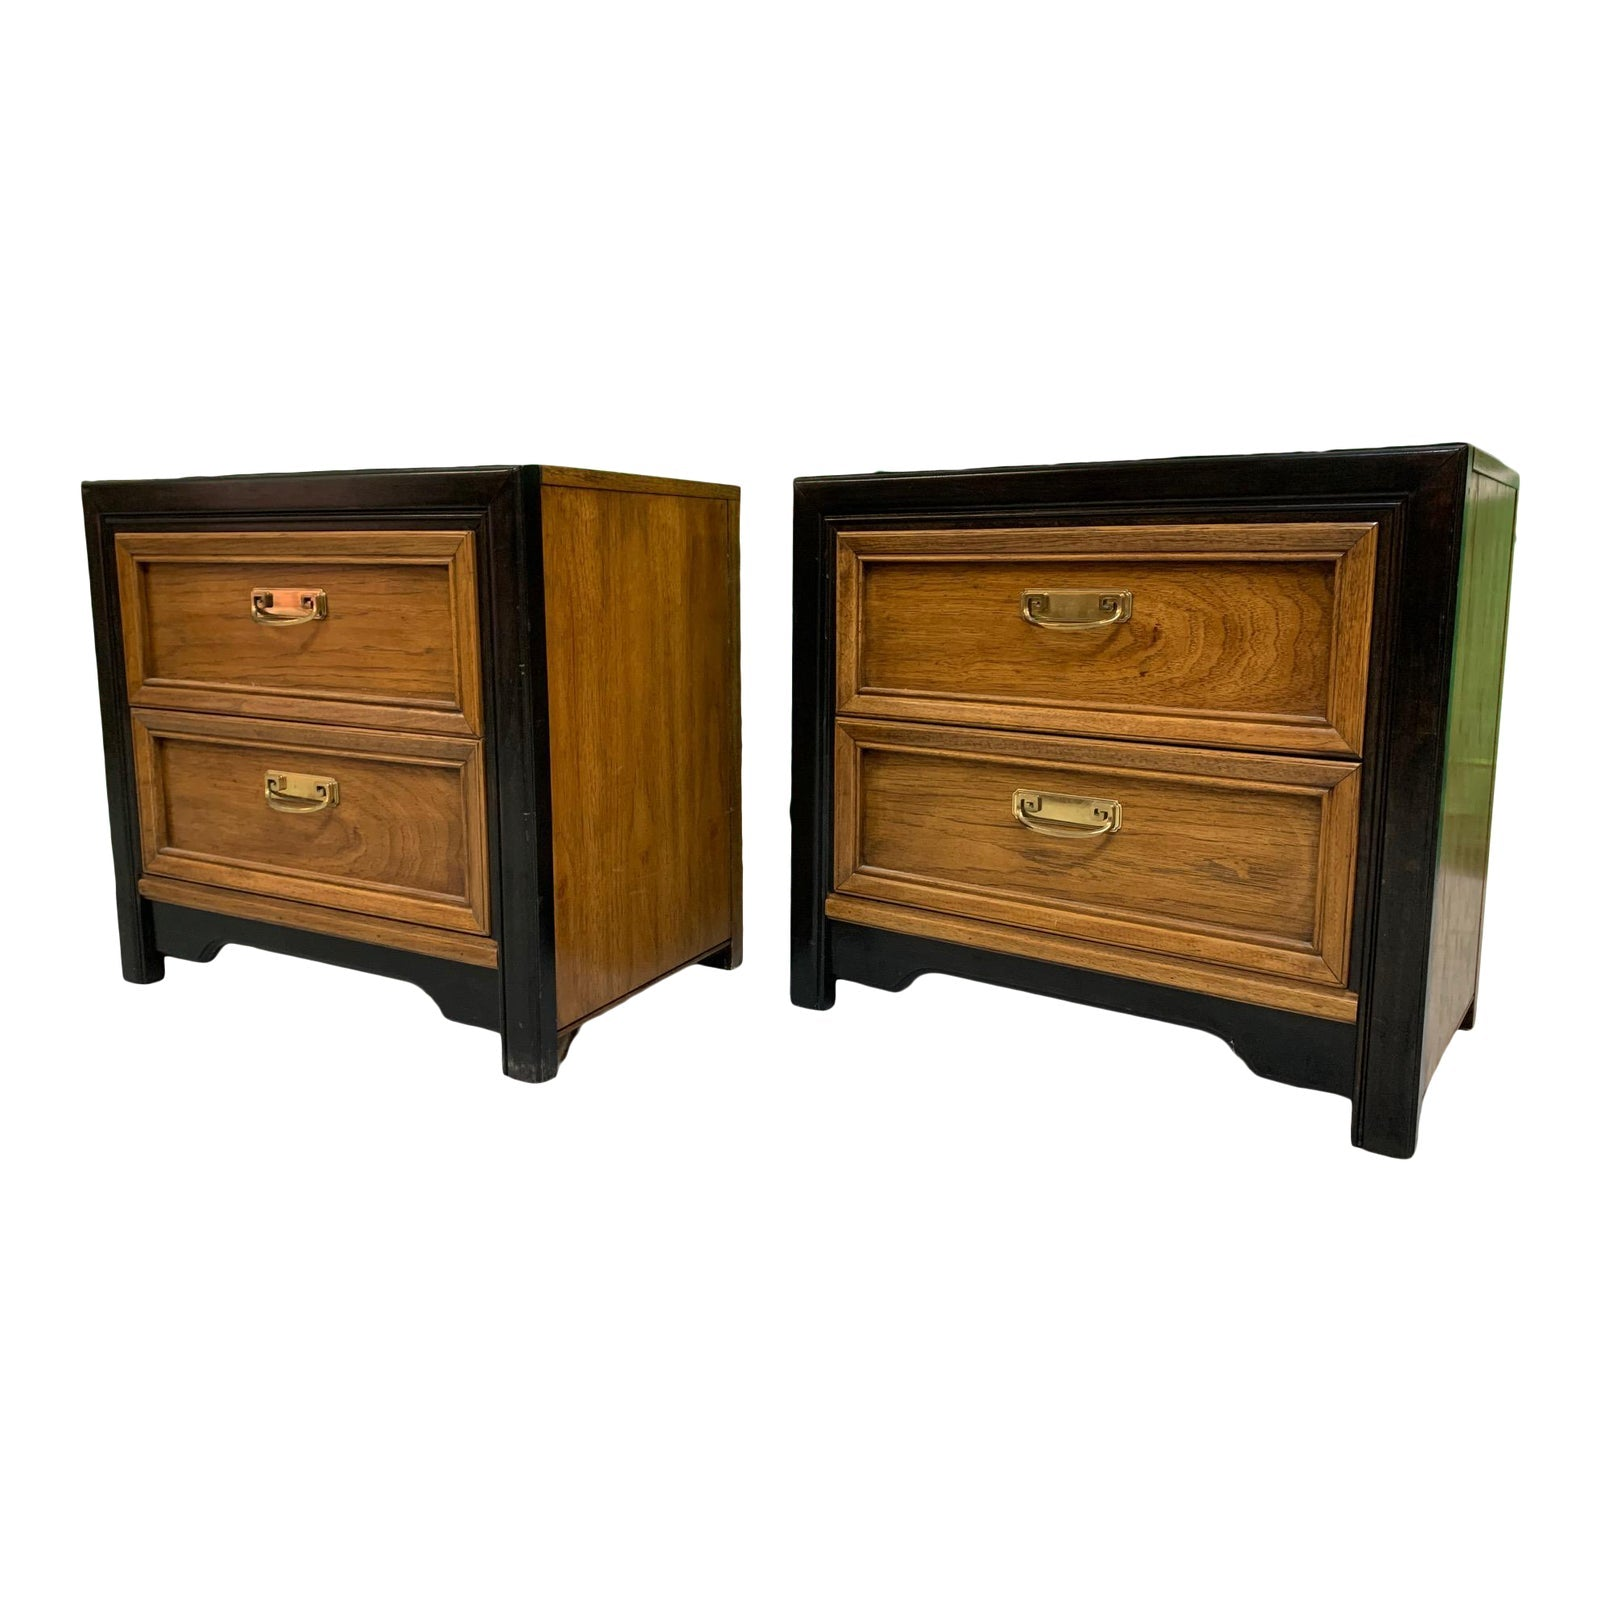 Thomasville Two-Toned Nightstands